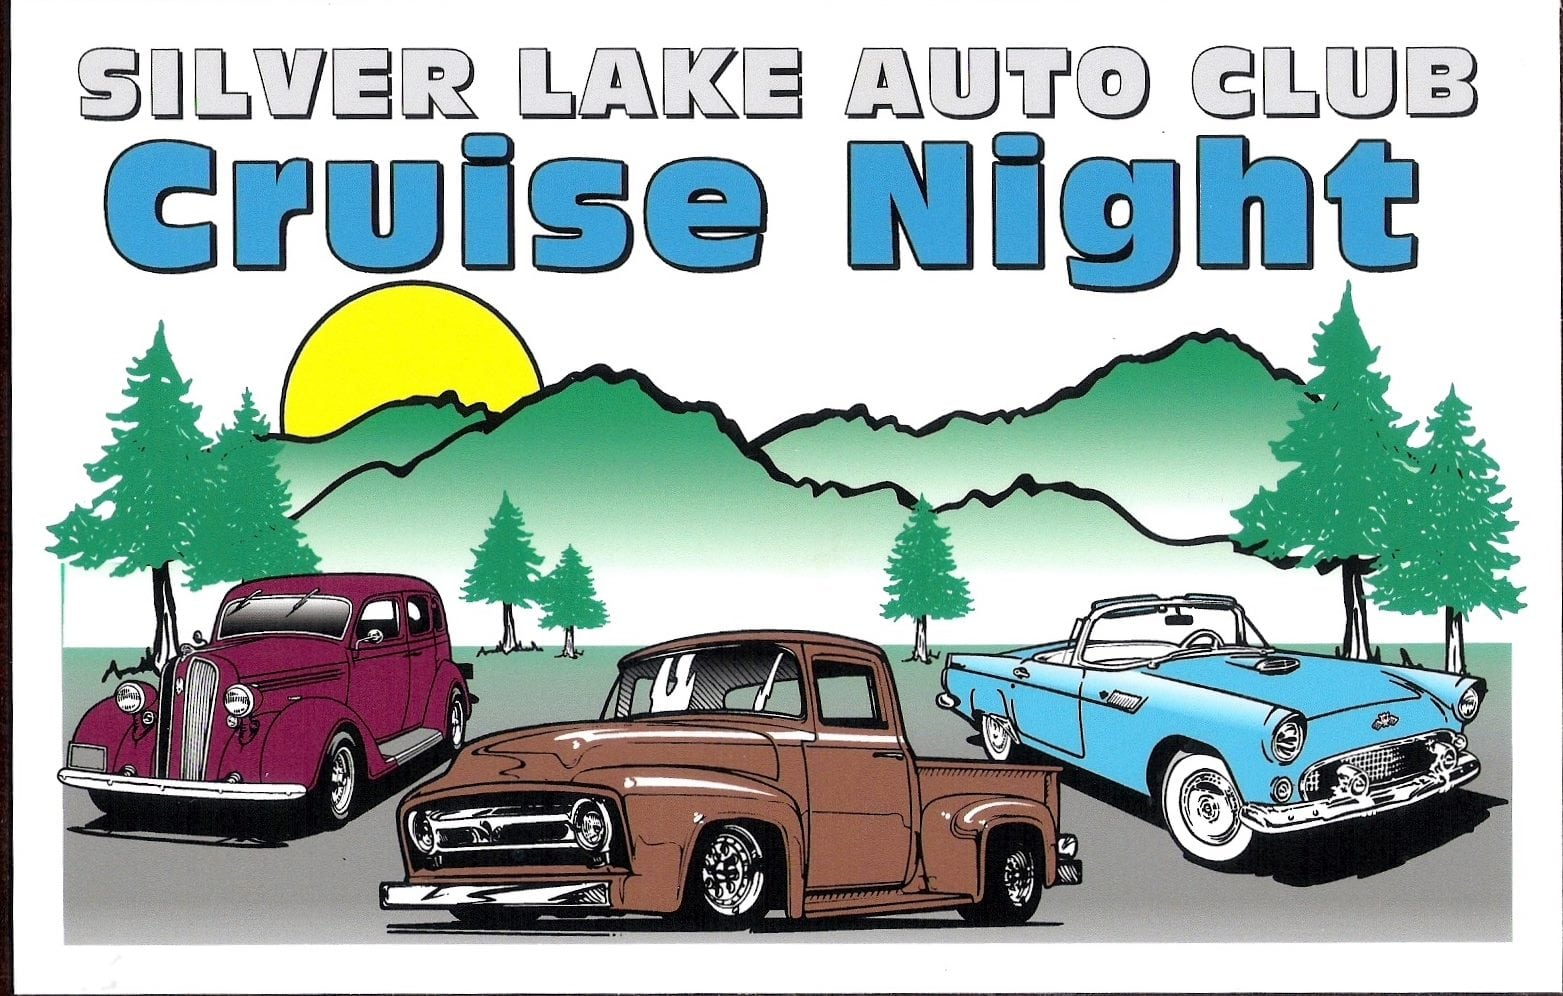 Silver Lake Auto Club Cruise Night